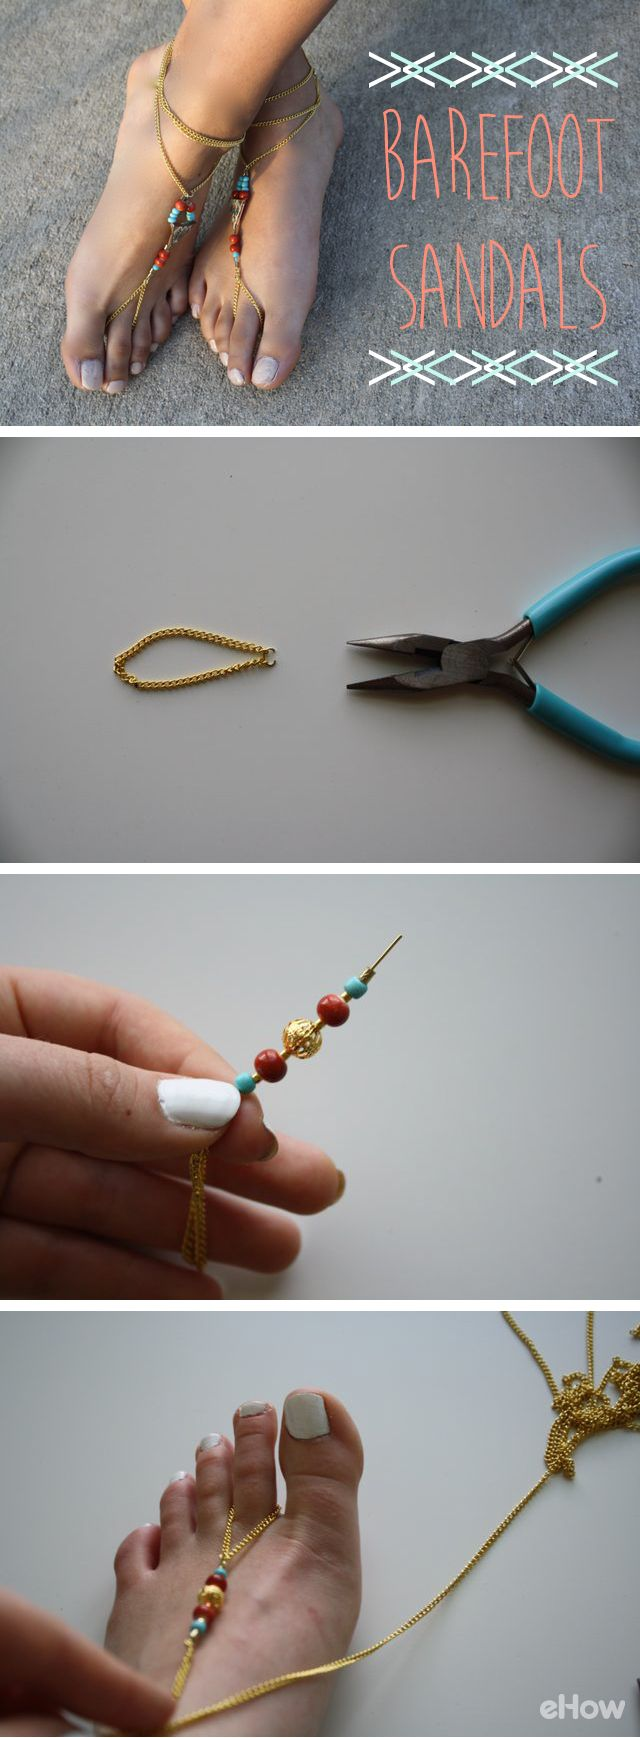 So in for summer's spent outdoors! Do you want to make boho-inspired barefoot sandals for summer? This project takes under an hour to complete, and you can get all the materials at your local craft store. We used the Bead Landing brand, but any beading will work. Get the full DIY instructions here: http://www.ehow.com/how_2228109_make-barefoot-sandals.html?utm_source=pinterest.com&utm_medium=referral&utm_content=inline&utm_campaign=fanpage